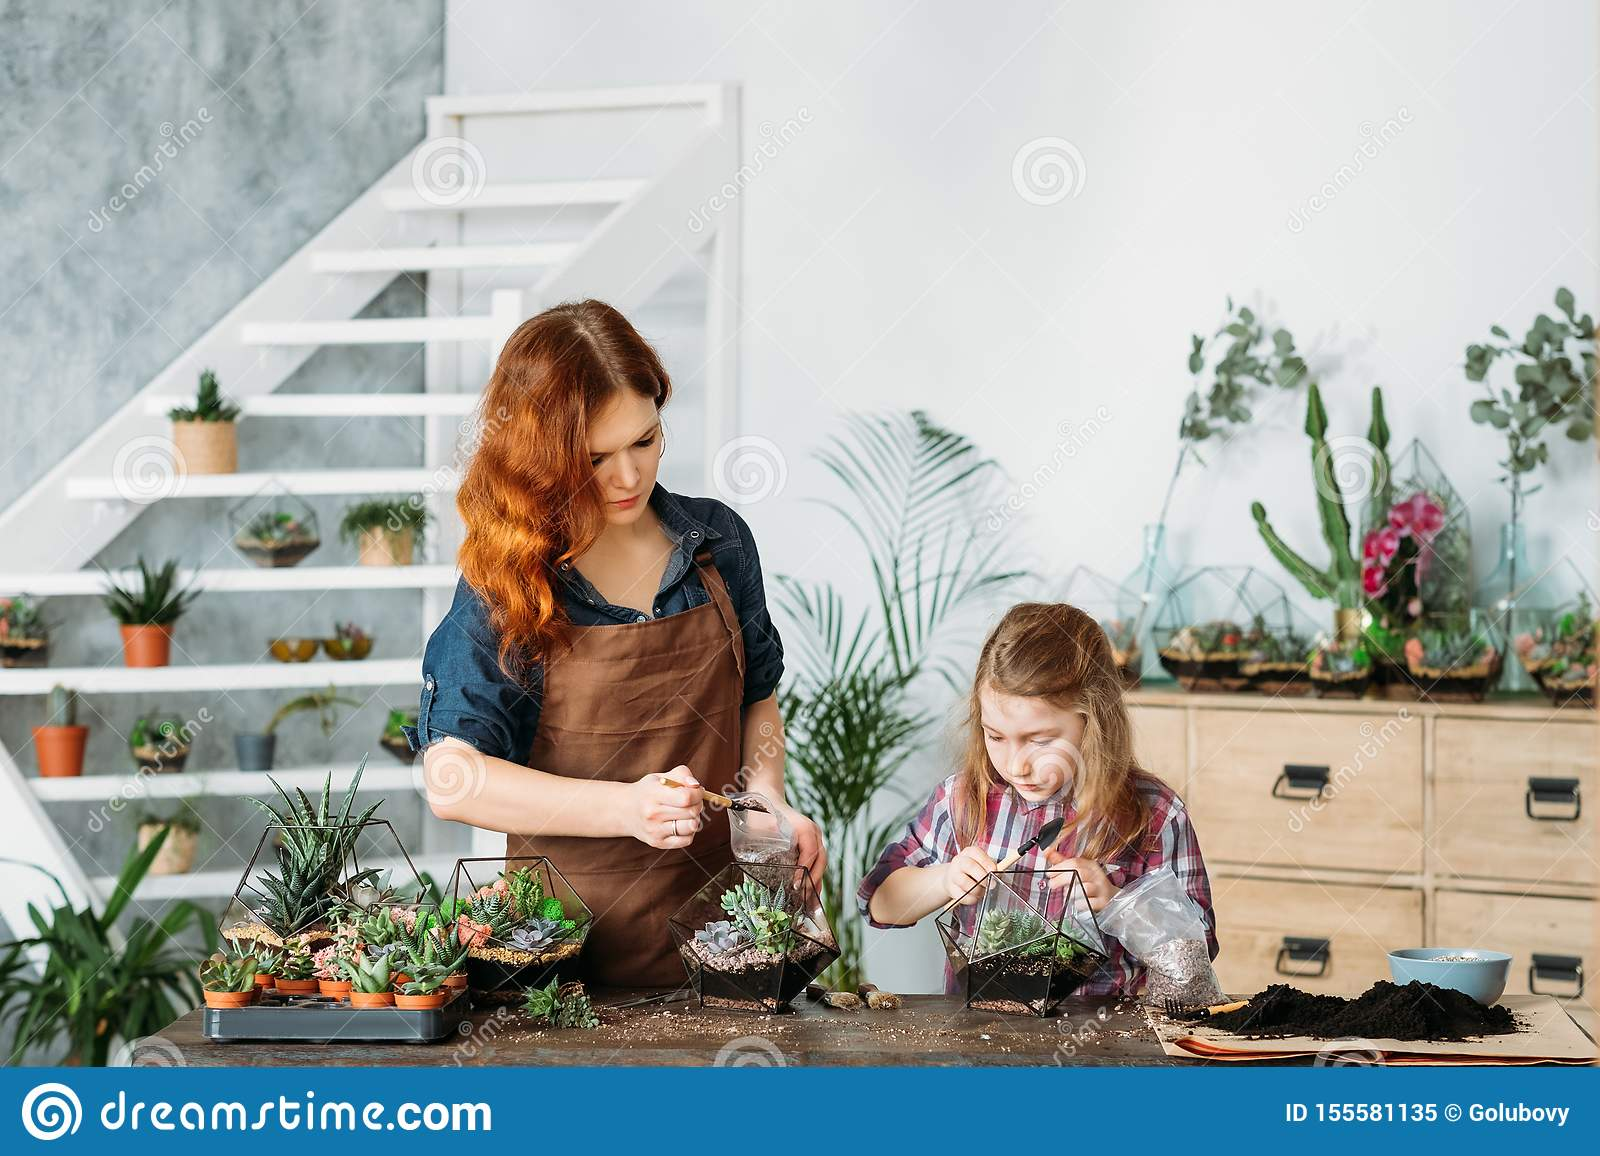 Home Business Growing Succulents Planting Stock Image Image Of